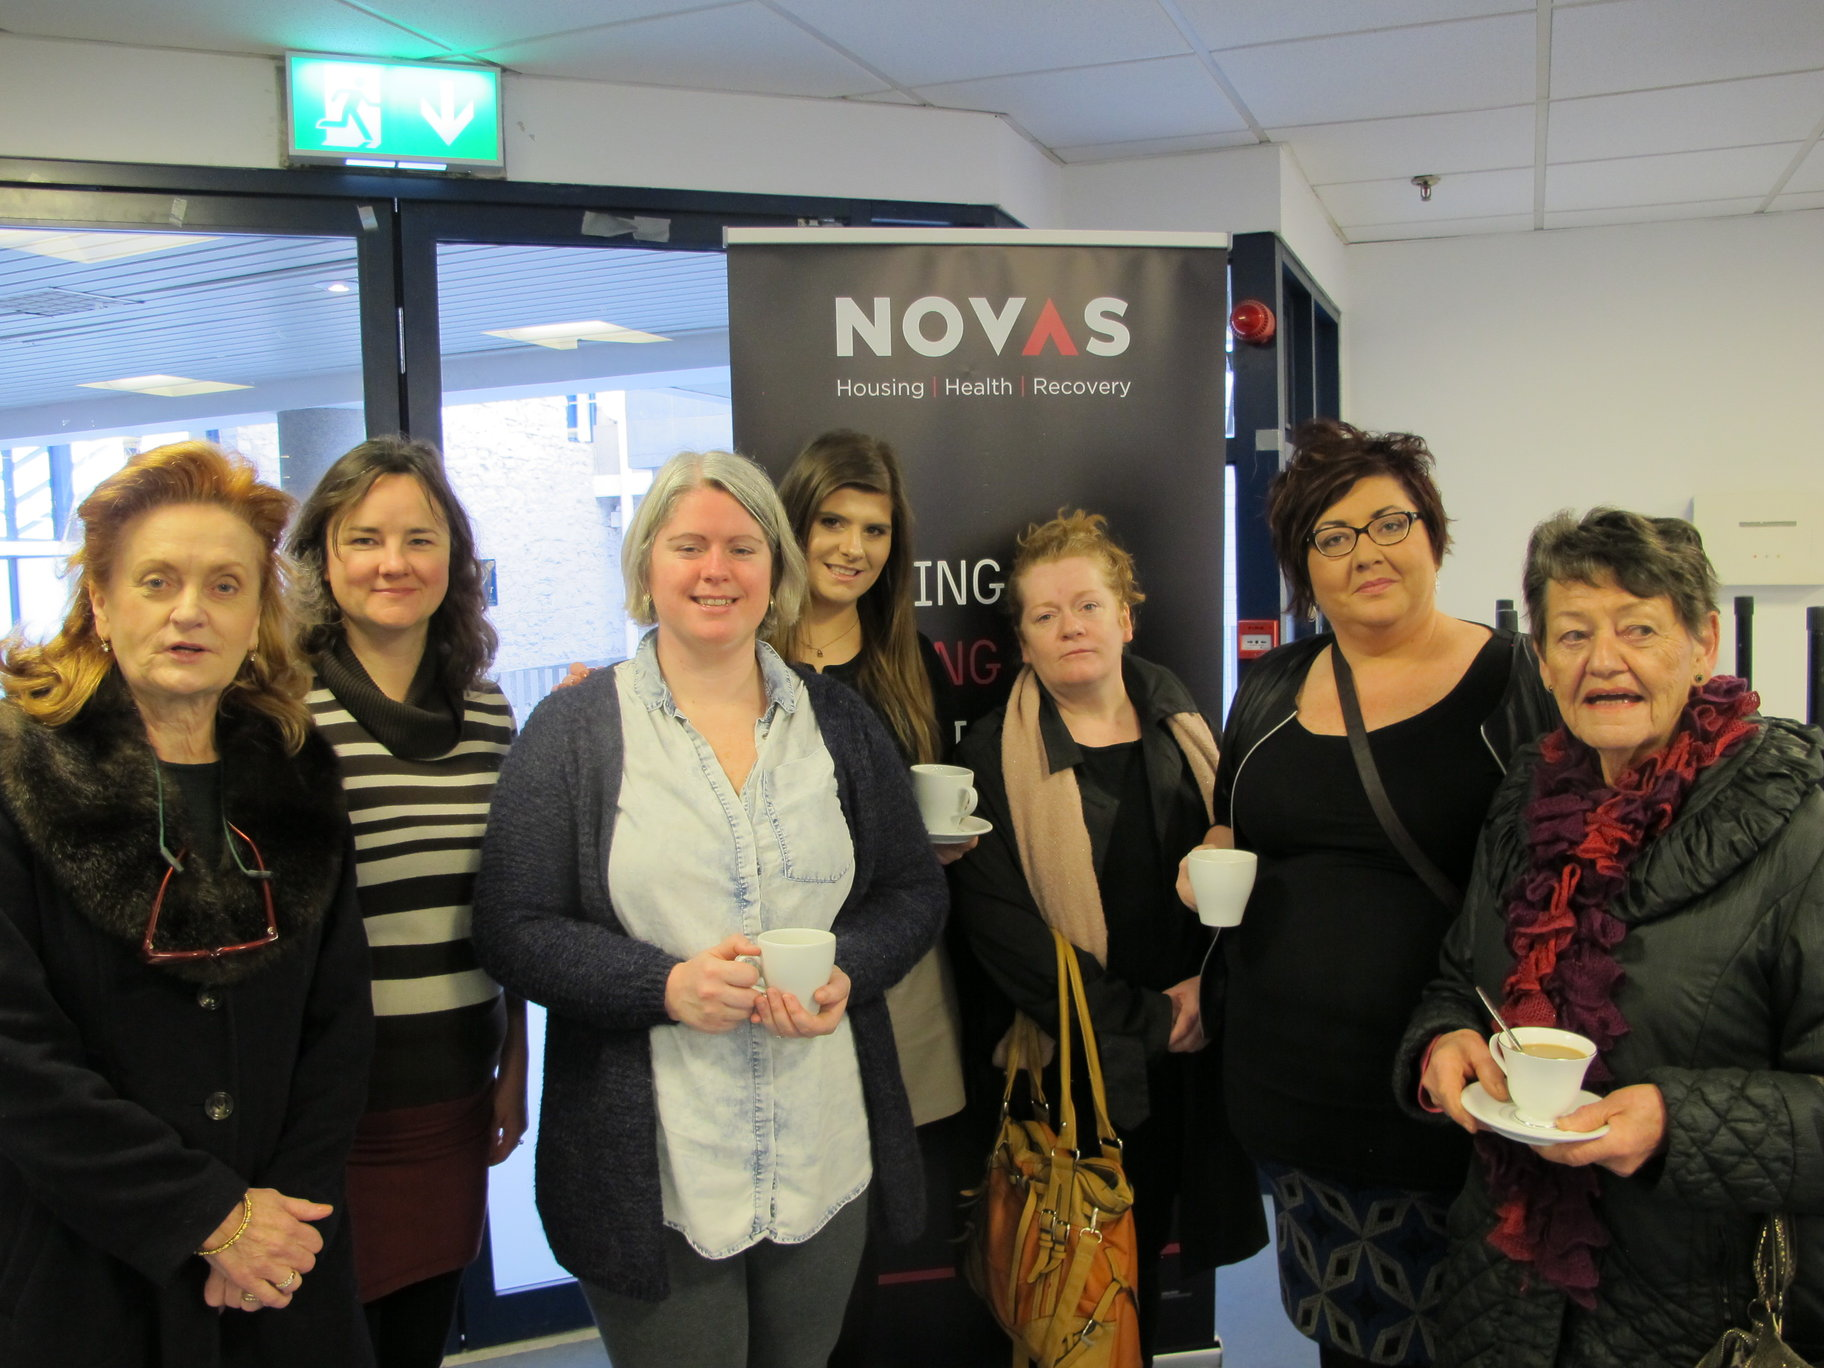 coffee morning in support of Novas